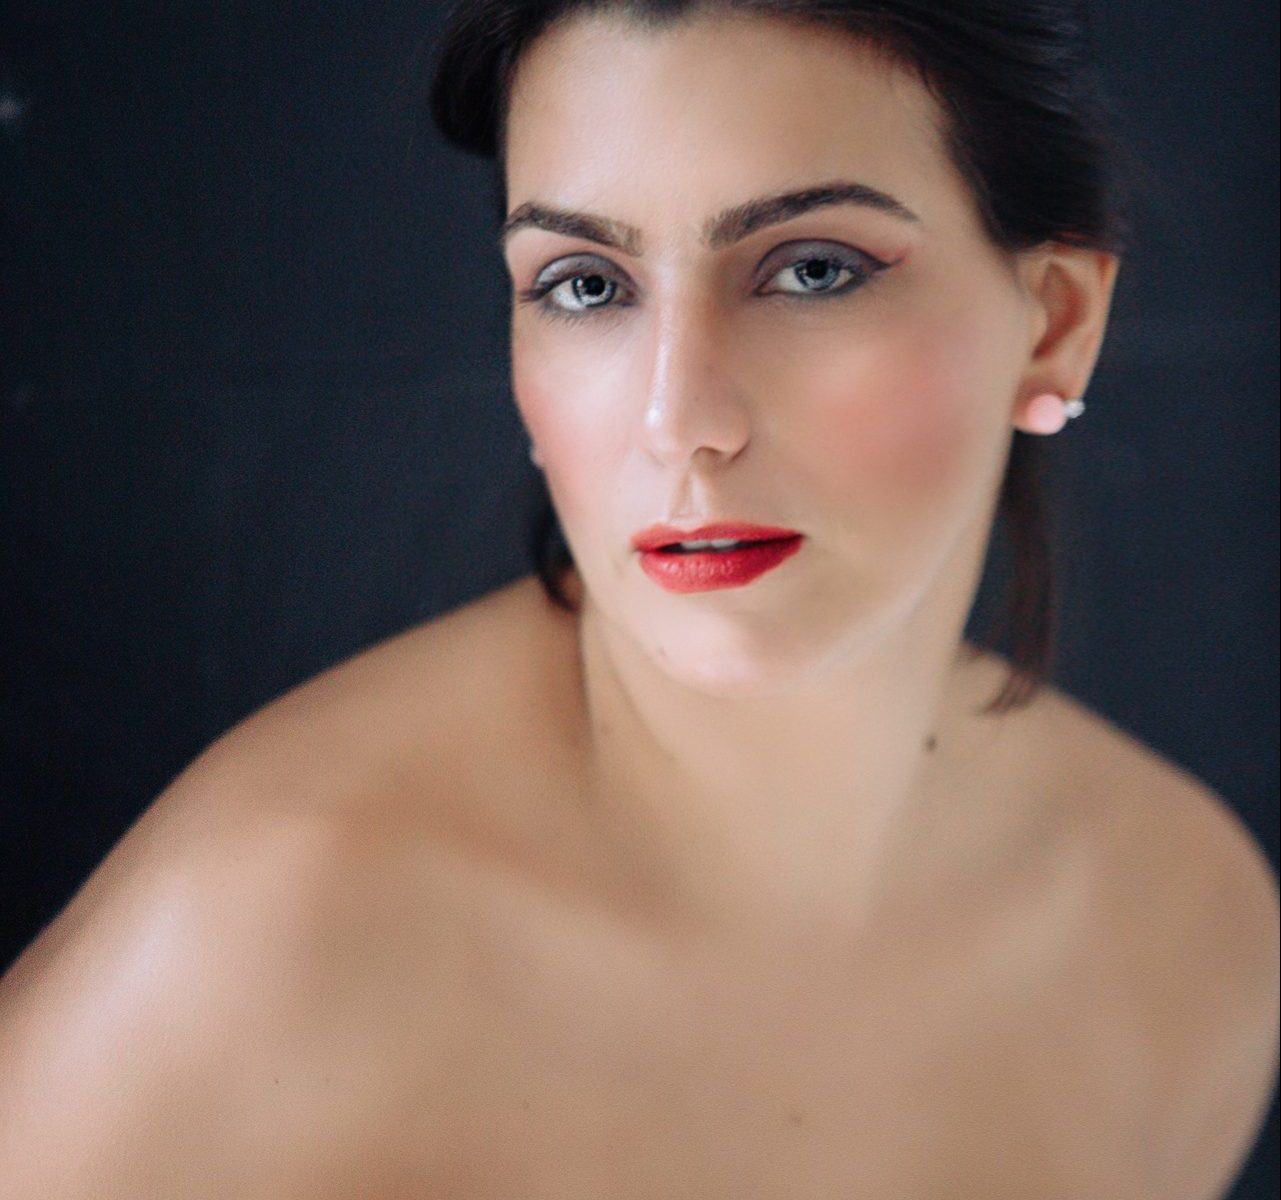 Vera Gallardo a sustainable fashion and beauty blogger wearing a white corpet with no strings with very well done makeup wearing red lipstick and gold earings